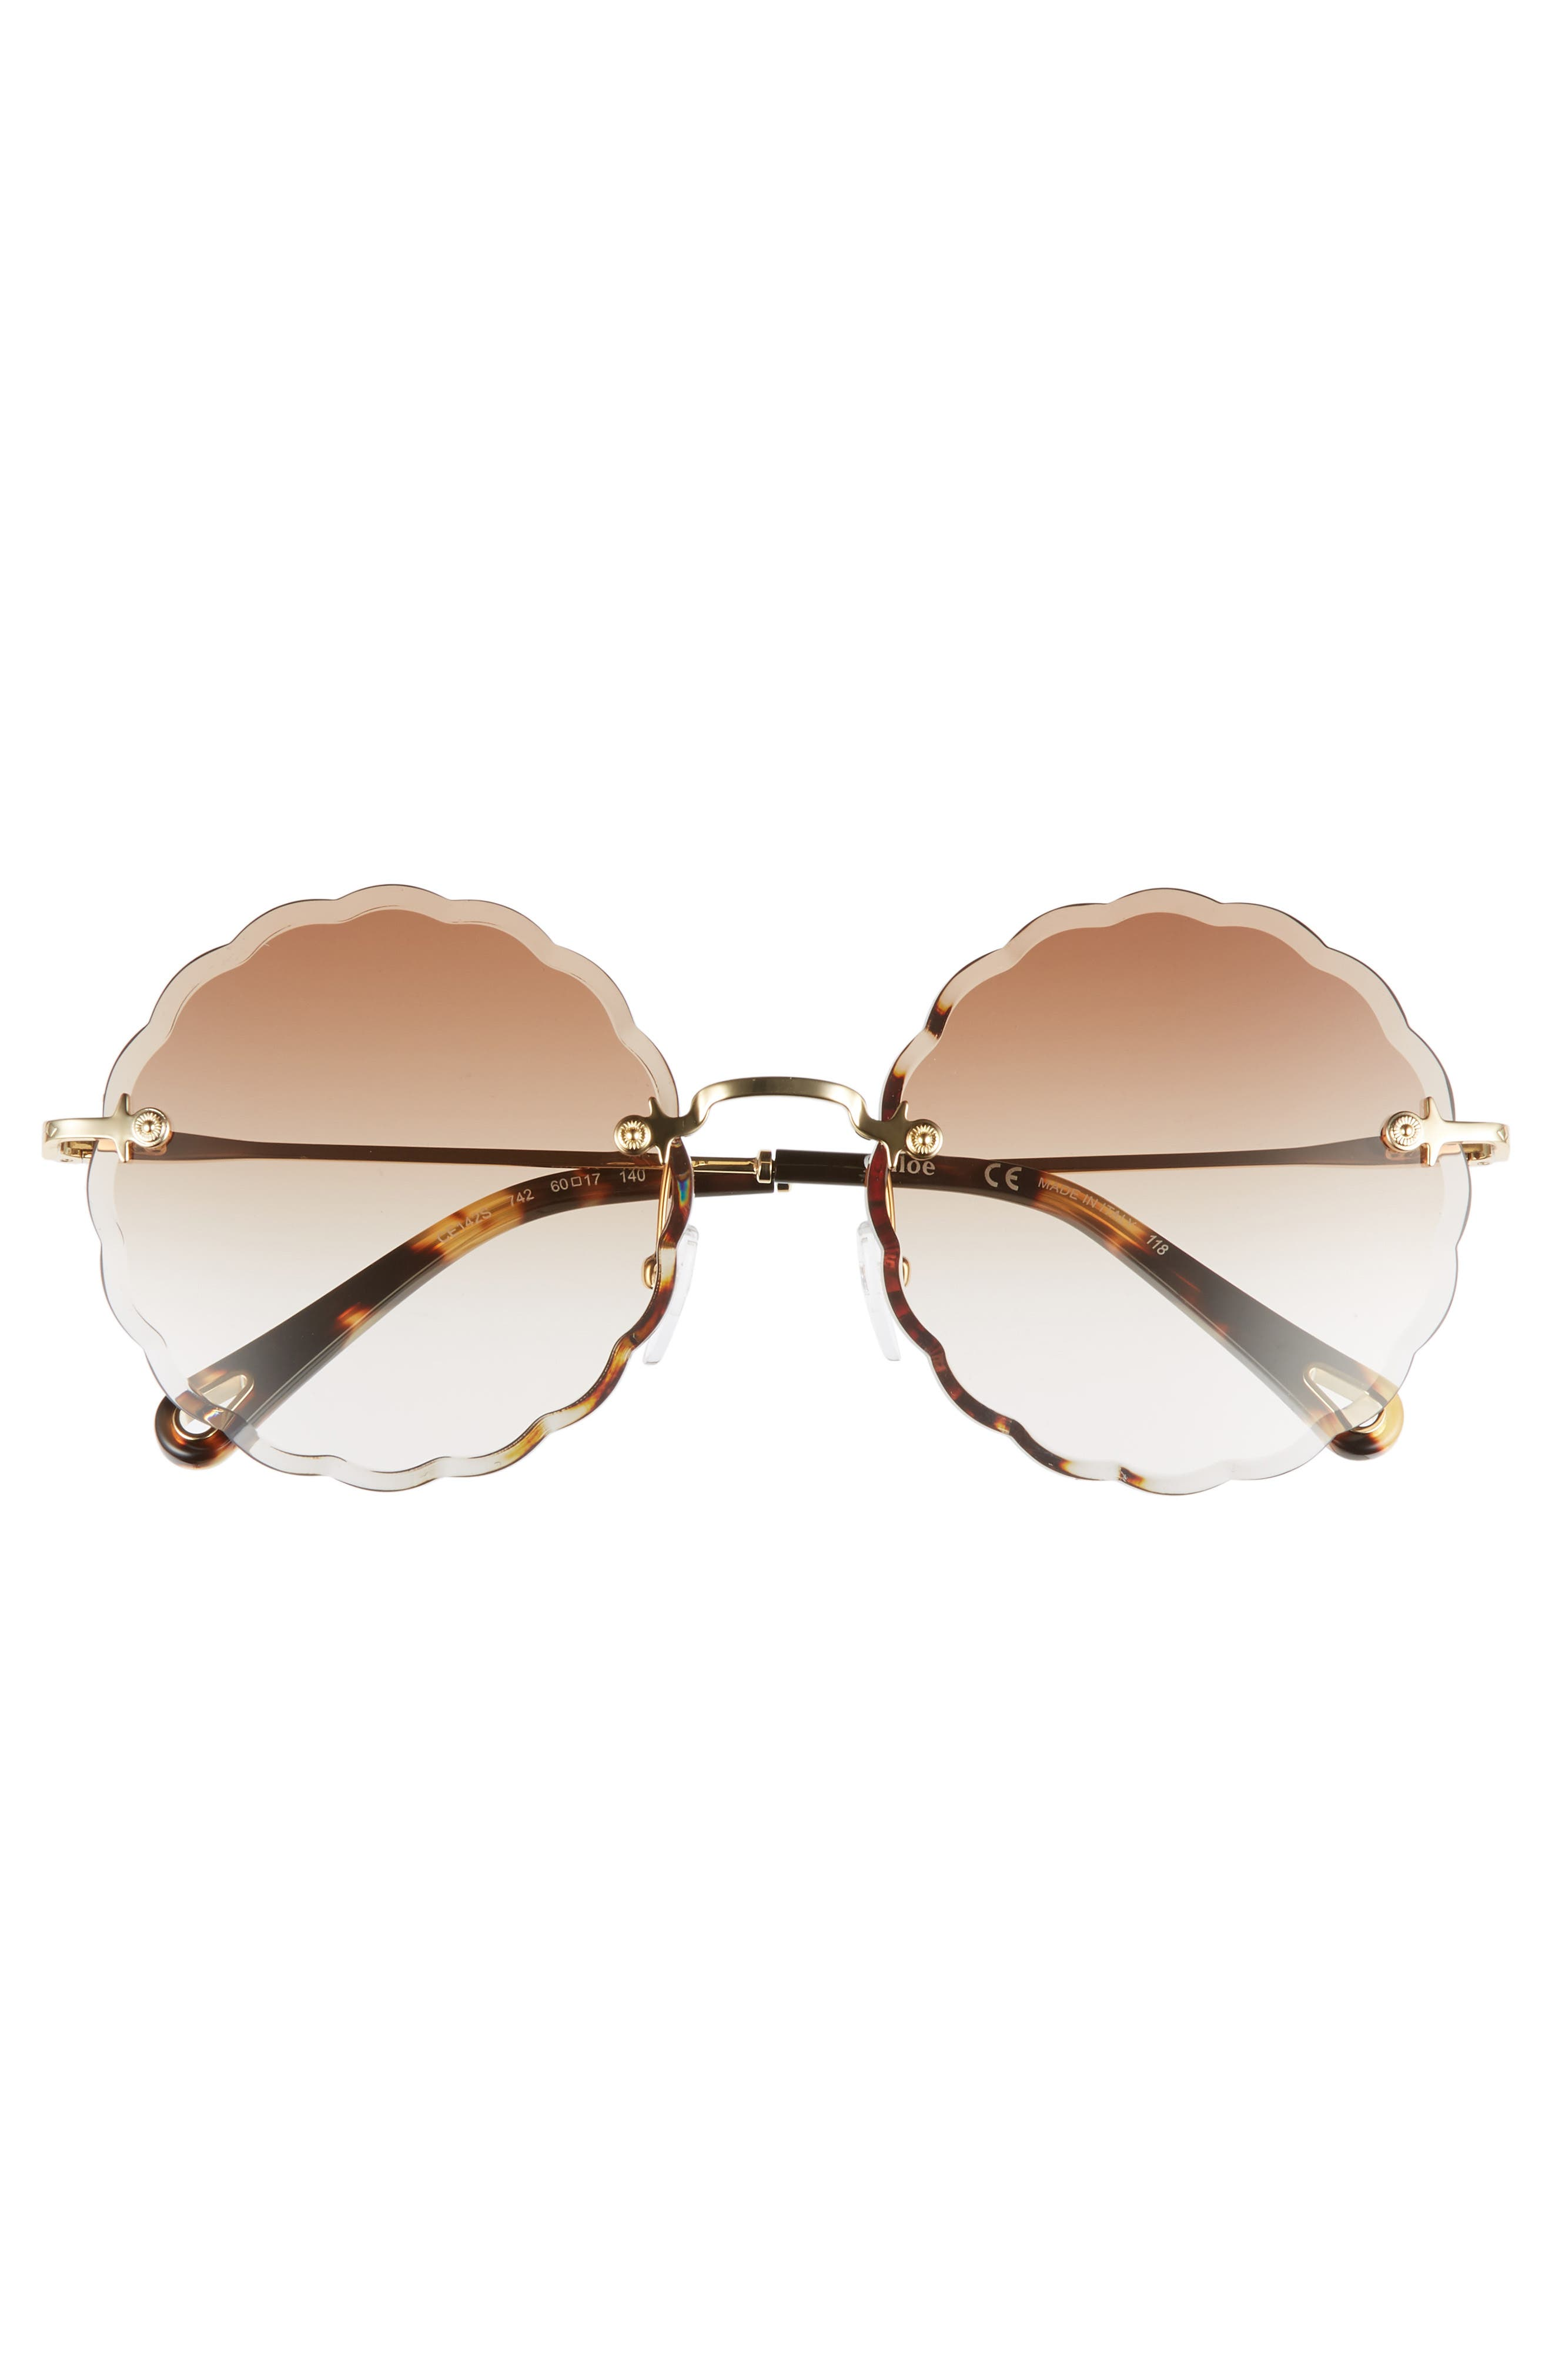 CHLOÉ, Rosie 60mm Scalloped Rimless Sunglasses, Alternate thumbnail 3, color, GOLD/ GRADIENT BROWN